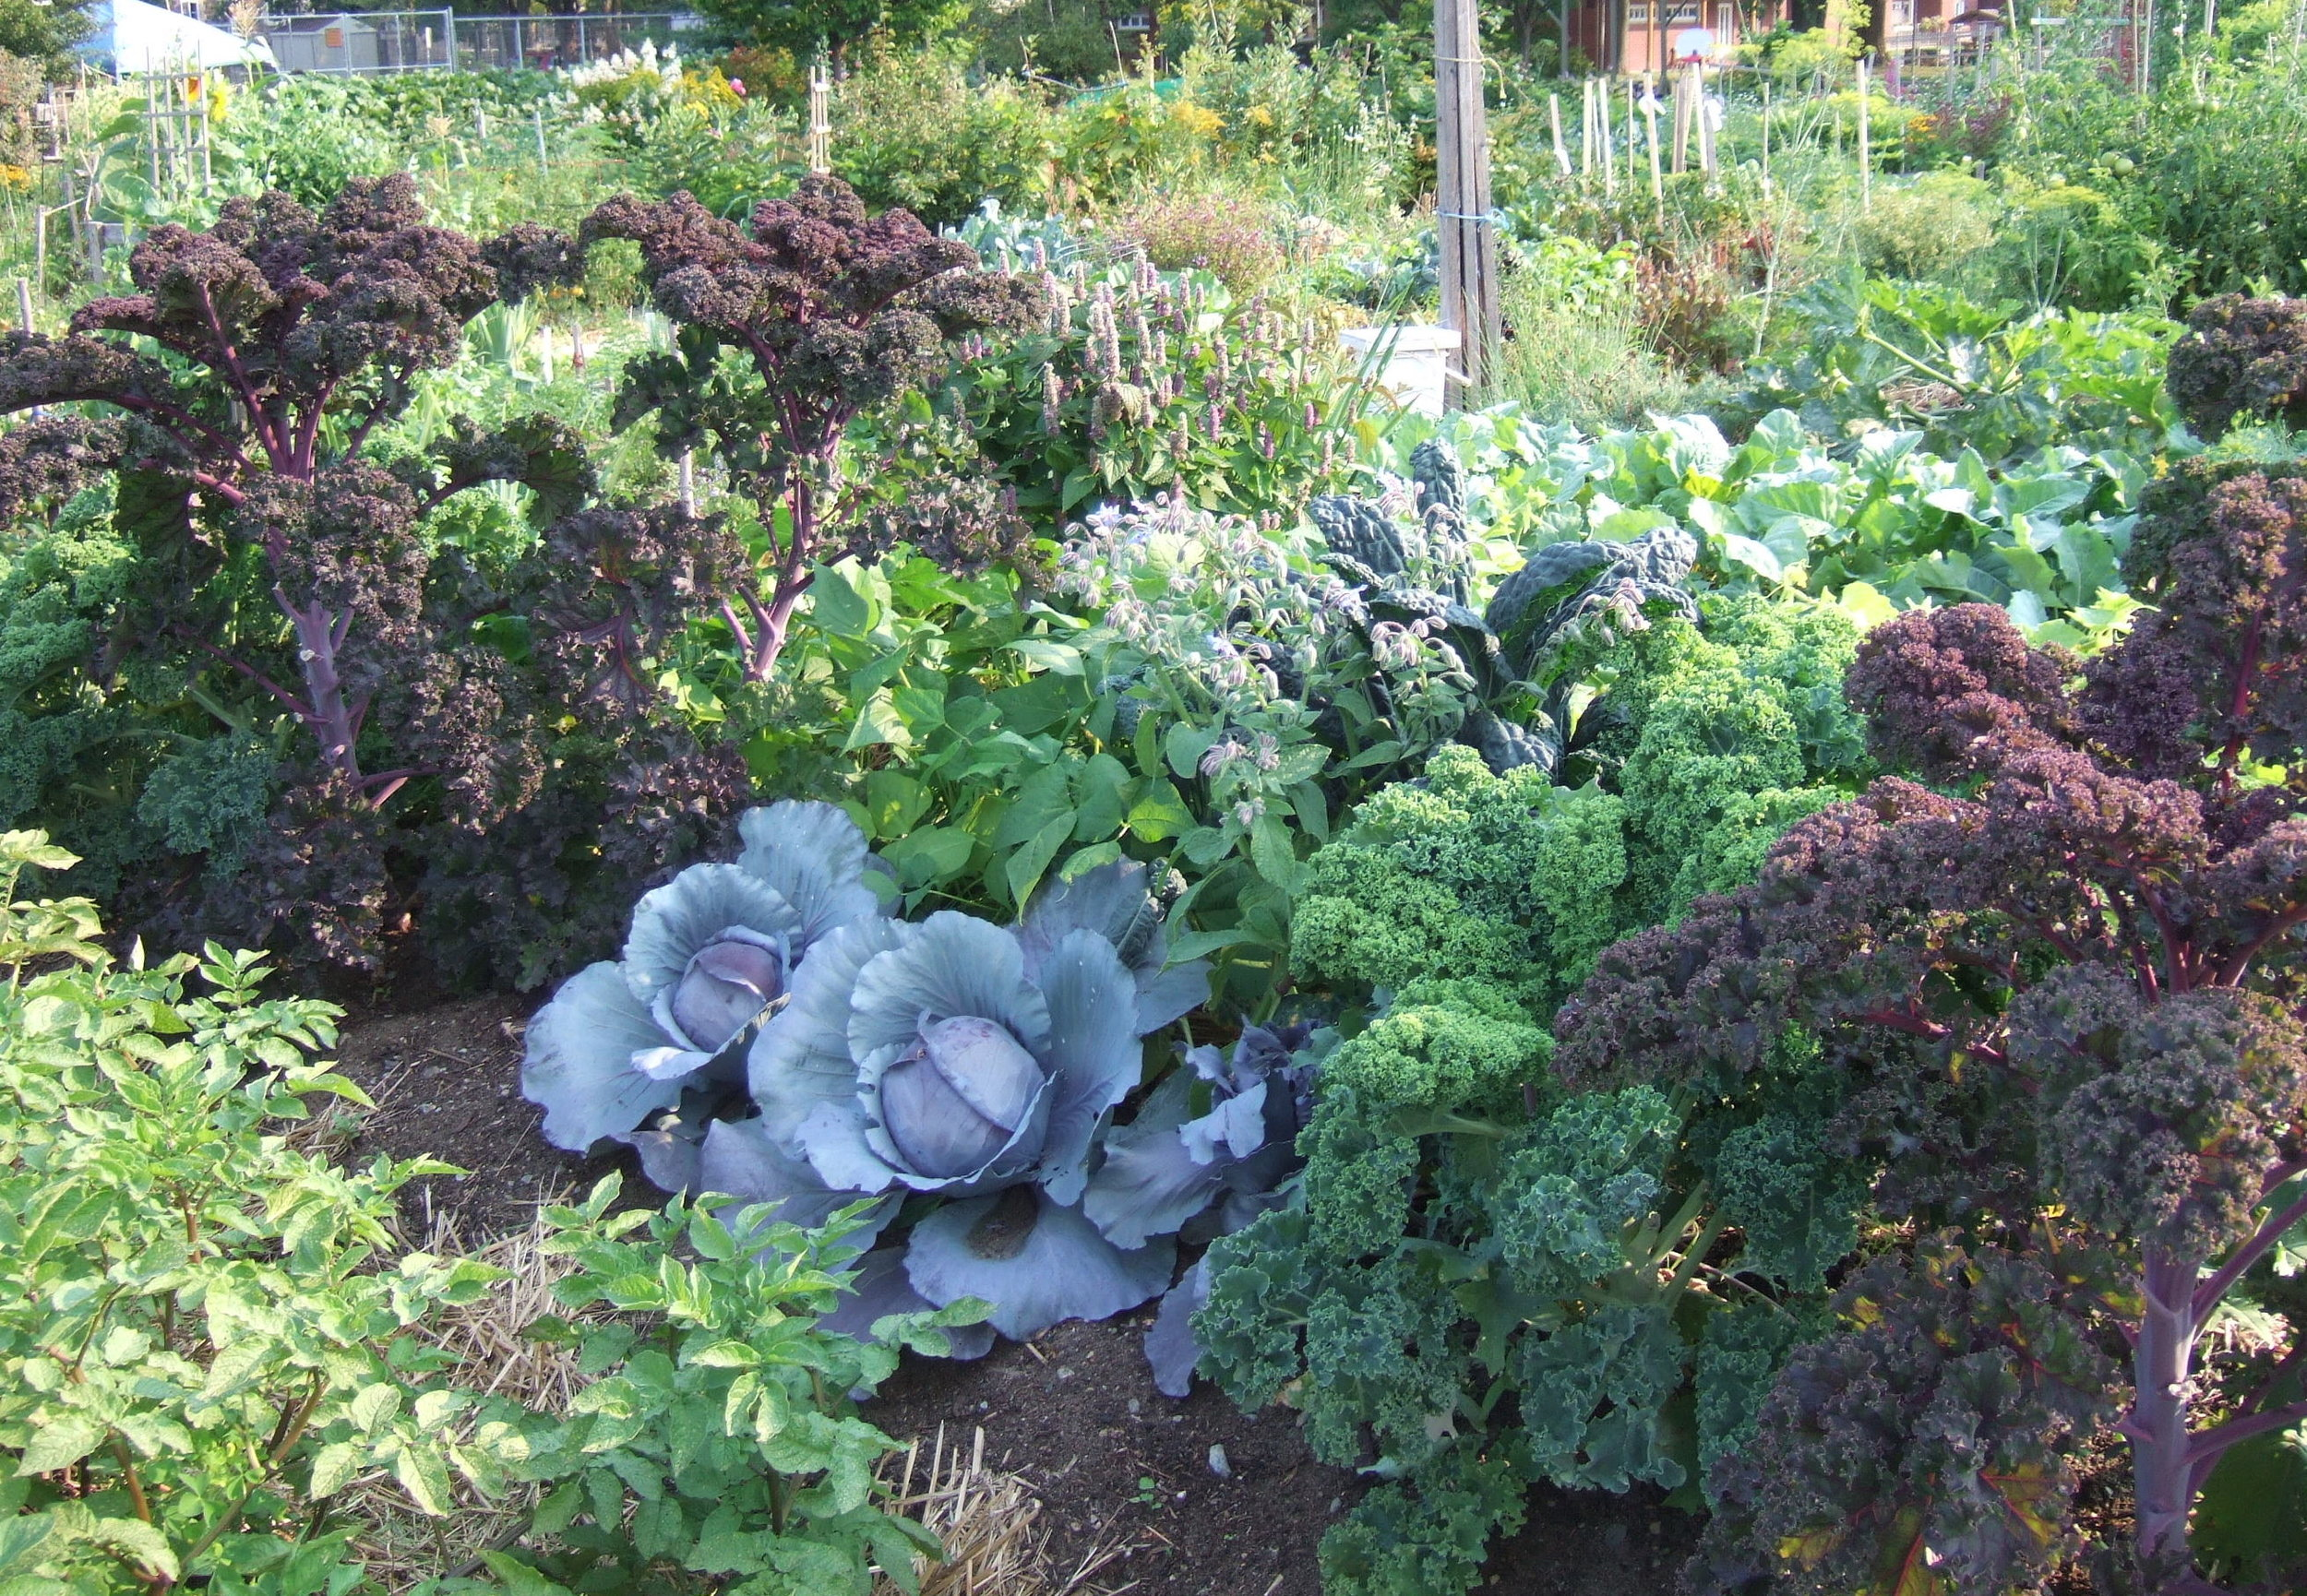 A 2008 national Gardening Association study estimated that U.S. food gardening households spent an average of $70 a year on their gardens. With a yield of about 1/2 pound of produce per square foot, an average 600-square-foot garden can produce 300 pounds of produce worth $600!